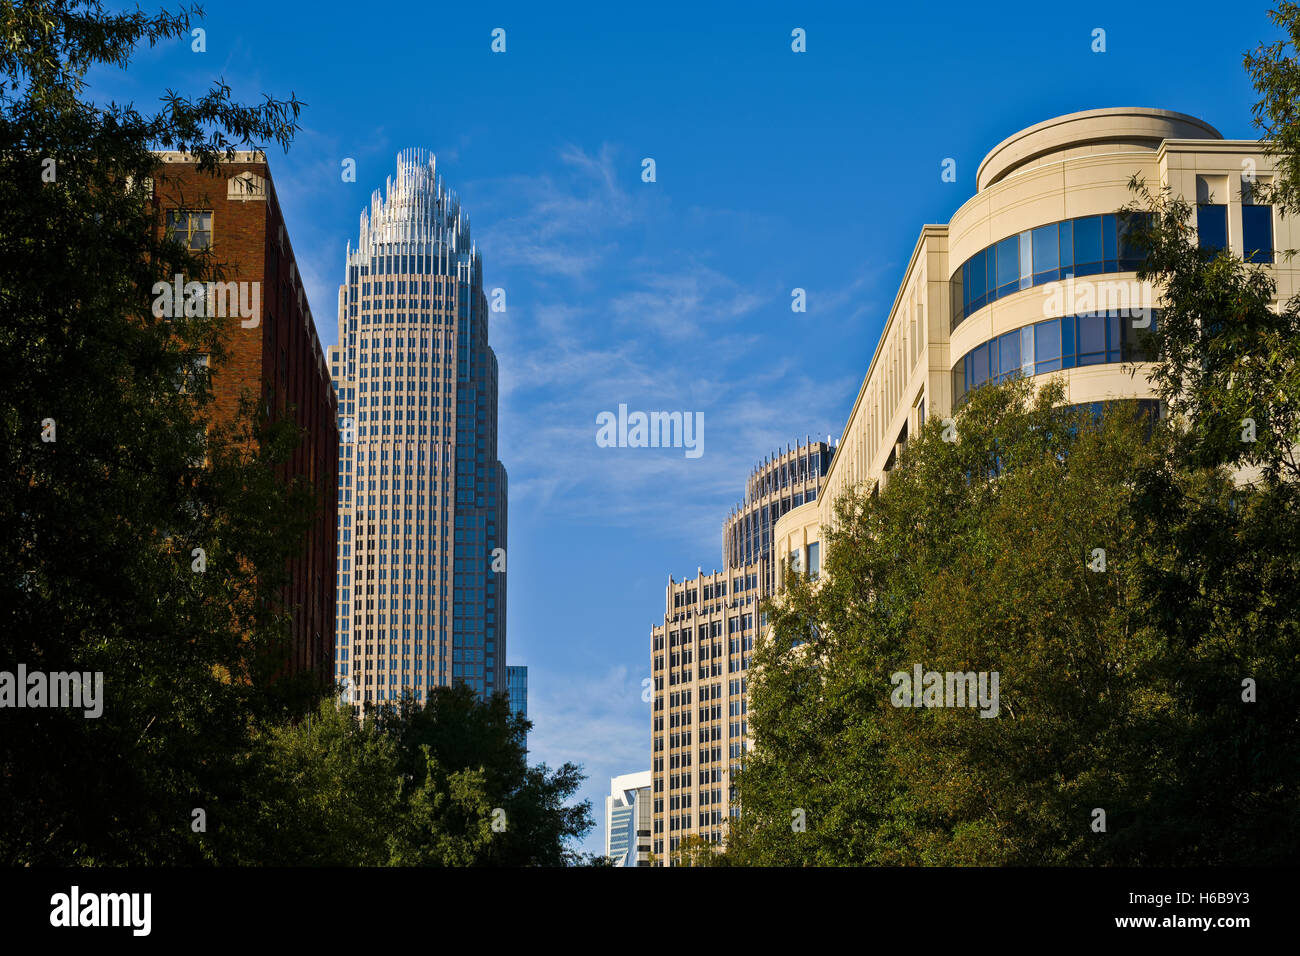 L'architecture, bâtiments dans la ville de Charlotte, NC Photo Stock